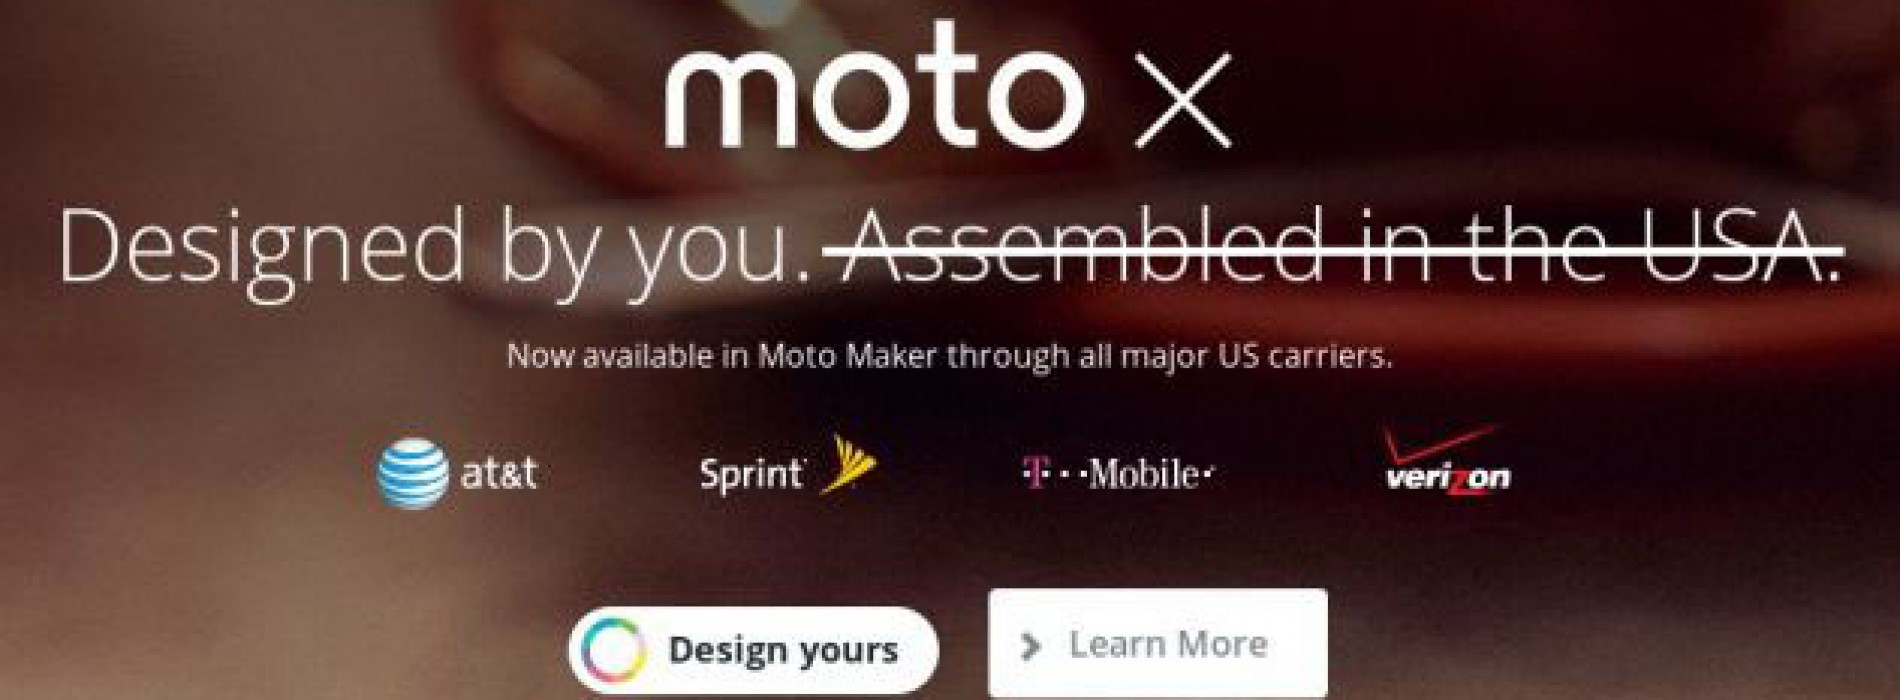 Motorola to close factory in Fort Worth by year-end, a sad day for American manufacturing